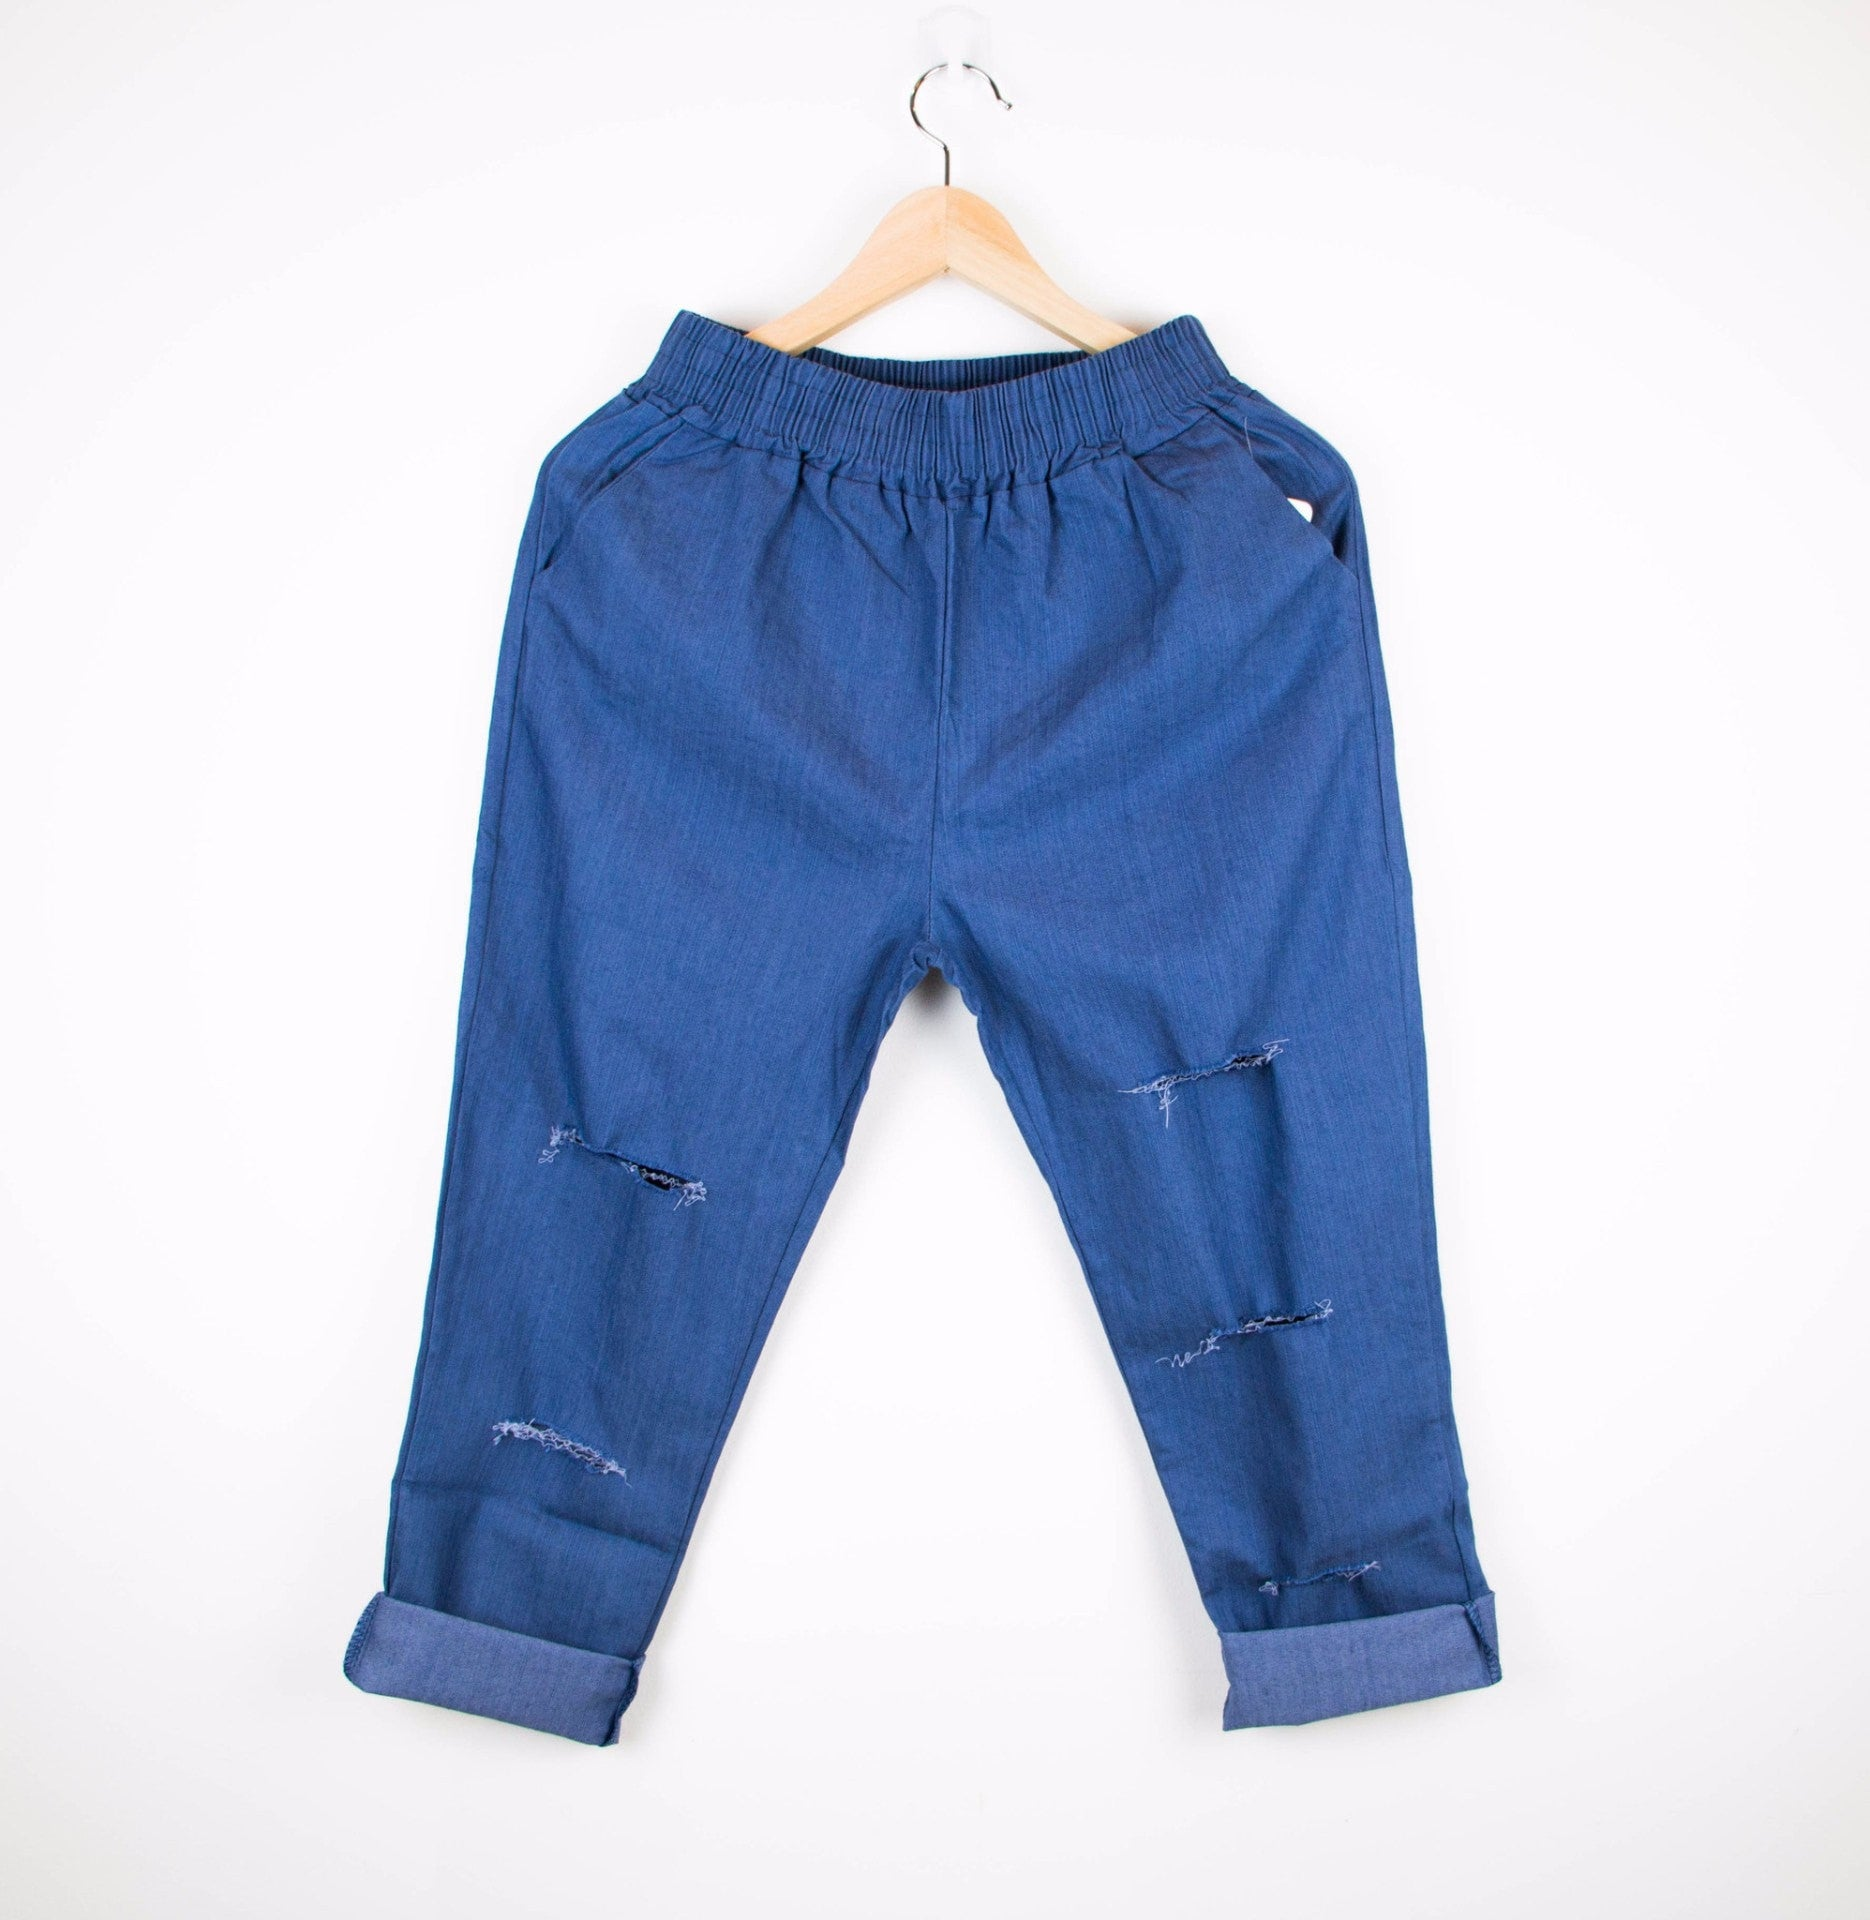 Korean Fashion - Shoes and Clothing - Baggy Jogger Sweatpants - Bottoms -  - Gangnam Styles - 6